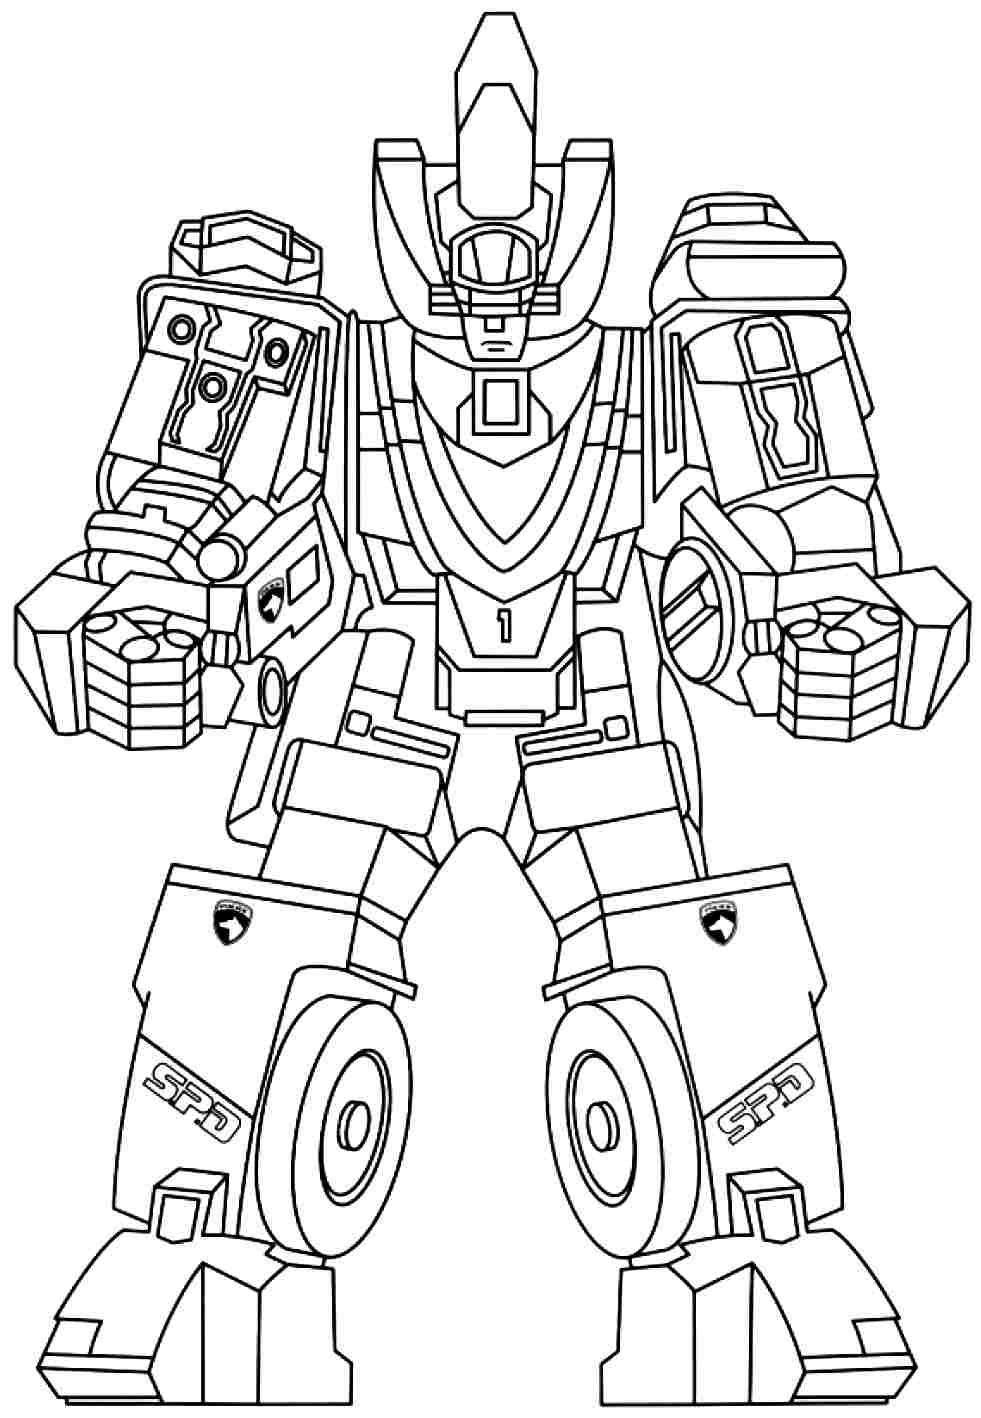 Print Full Size Image Power Rangers Colouring Pages Free For